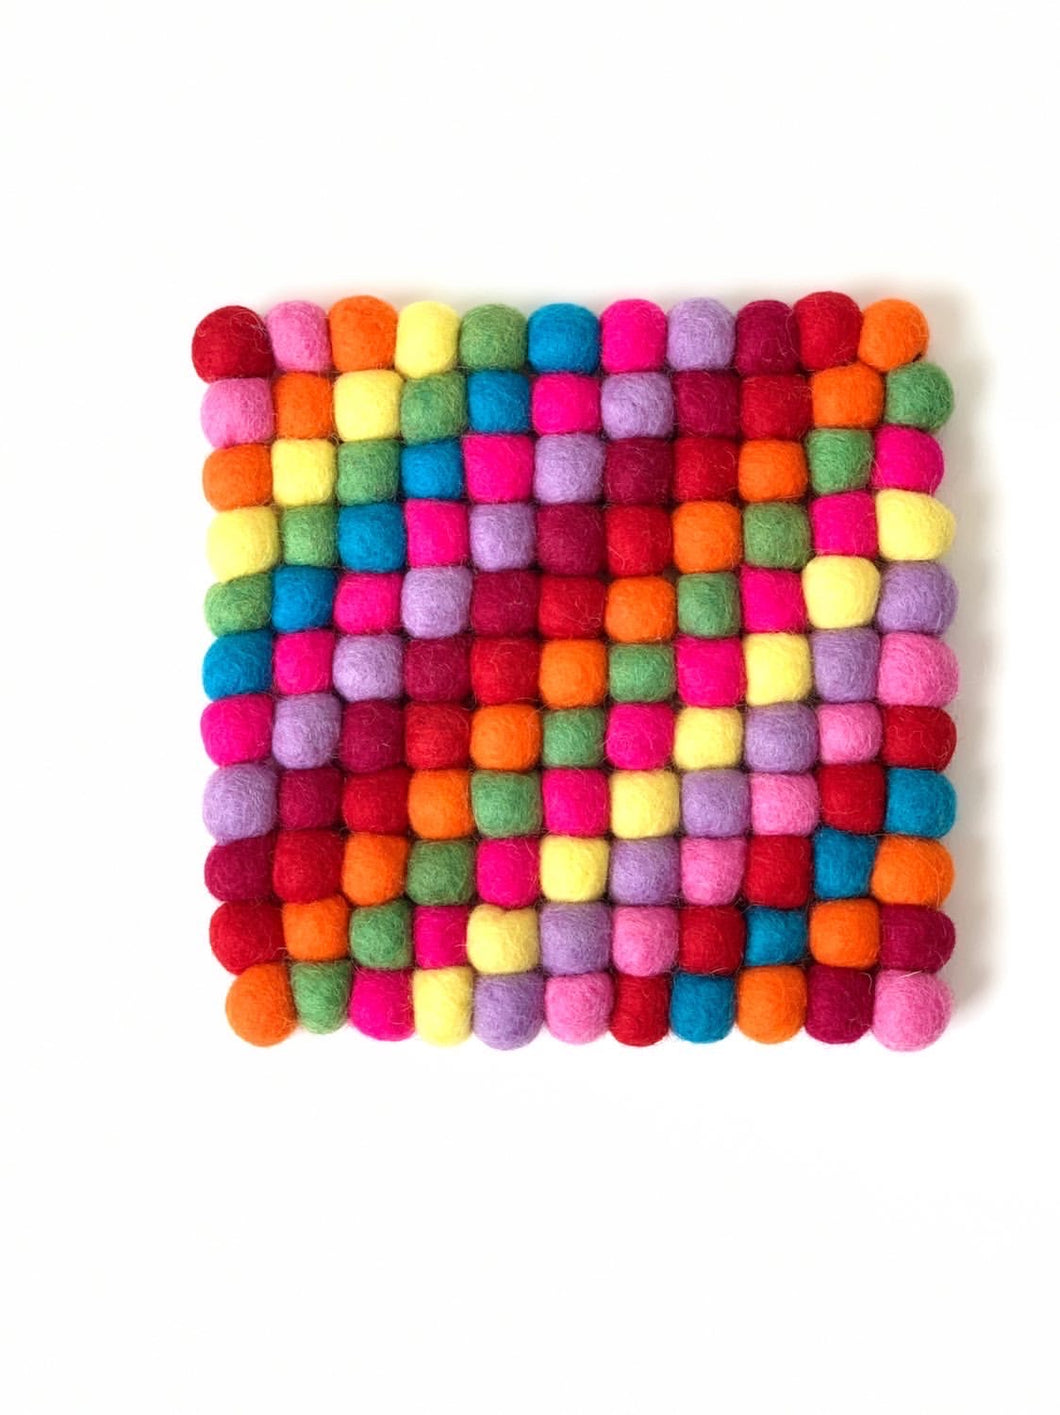 Handmade 100% Natural Wool Square Trivet - Large Rainbow